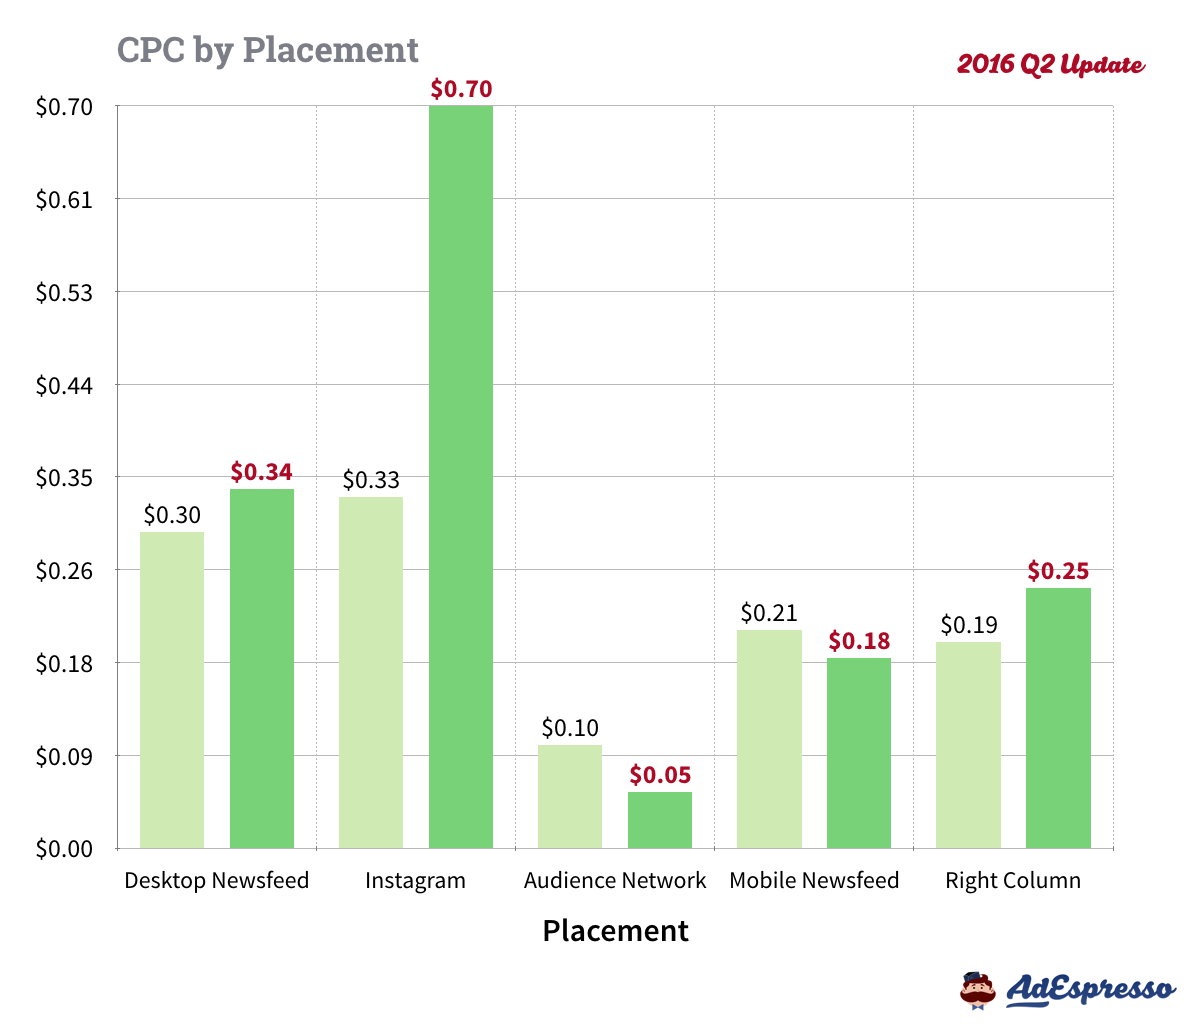 facebook-ads-cost-cpc-placement-2016-Q2.004